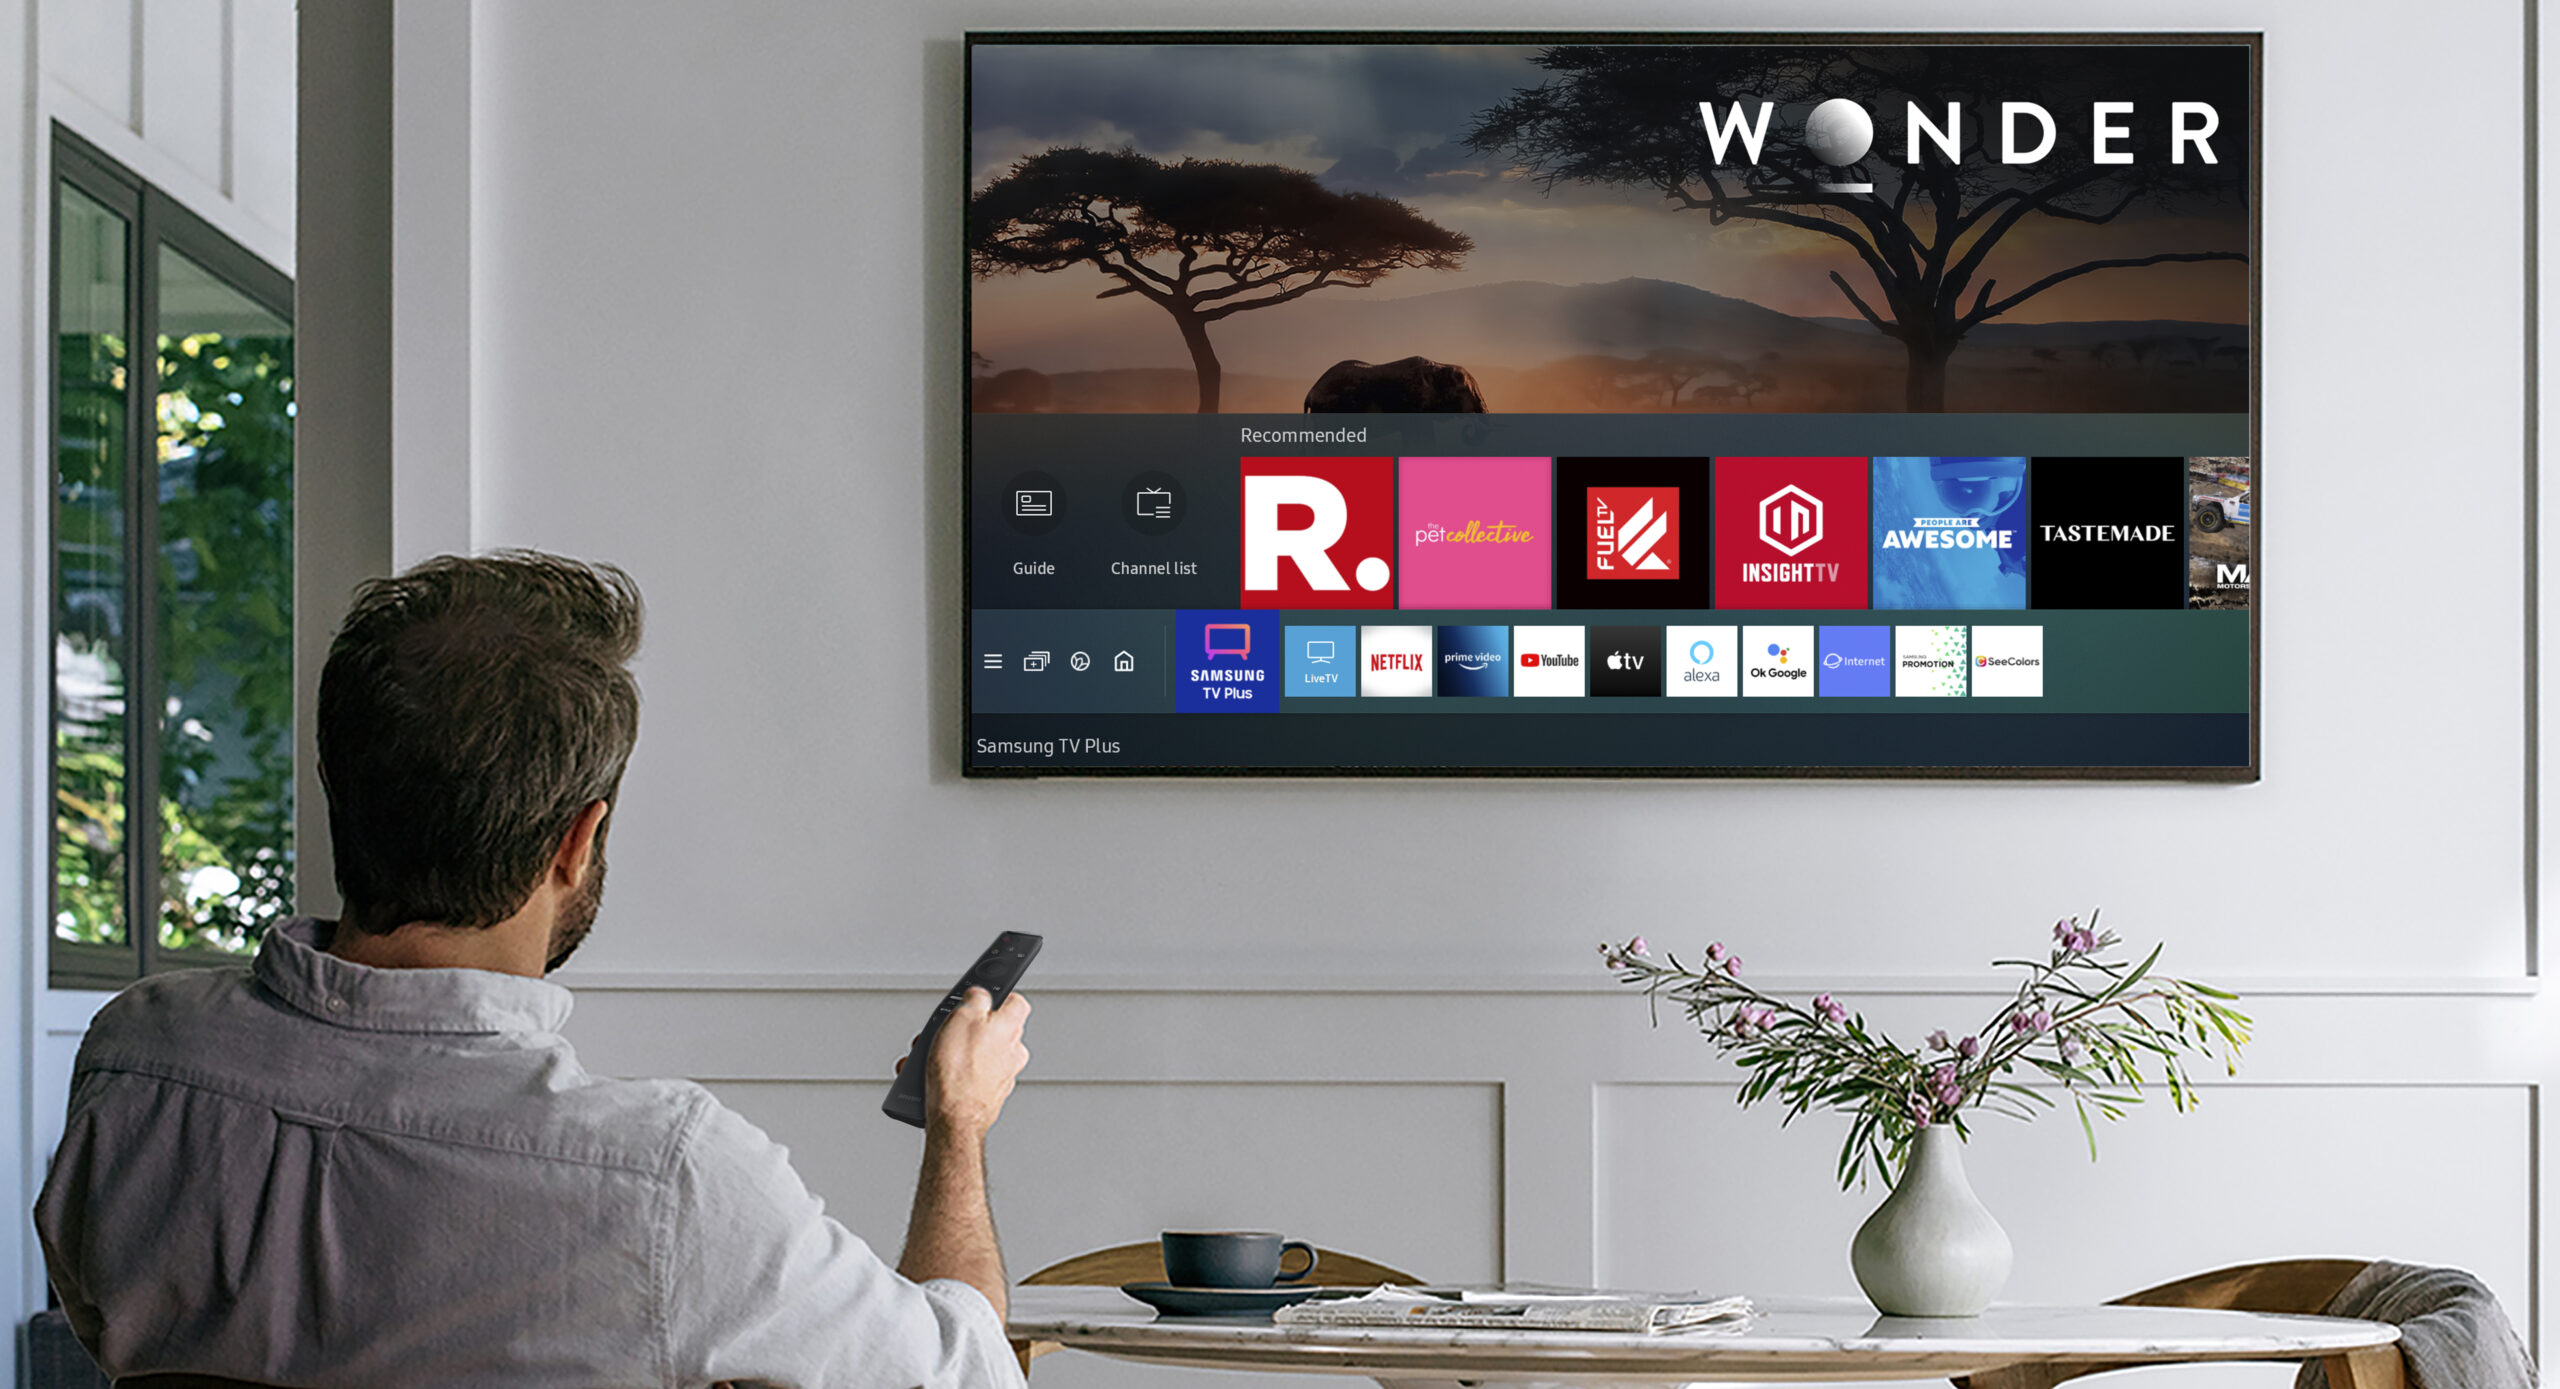 Now watch select free channels on Samsung Smart TVs without a cable connection